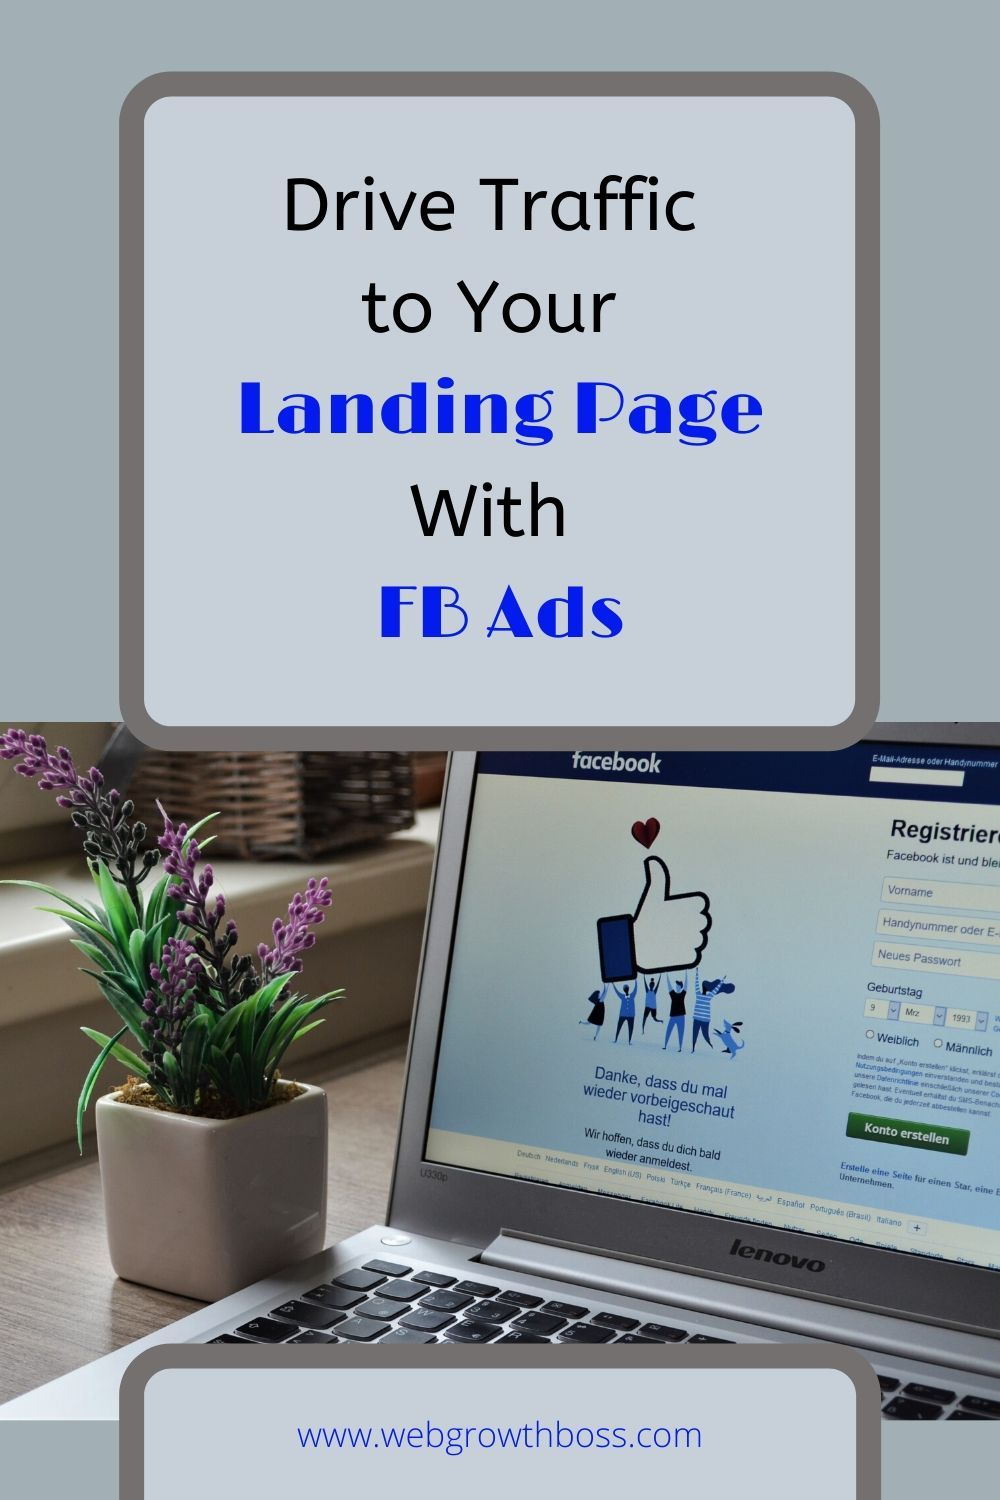 740a194efde5ca37038c56d6ceaeae15 - How To Get More Traffic To Facebook Business Page